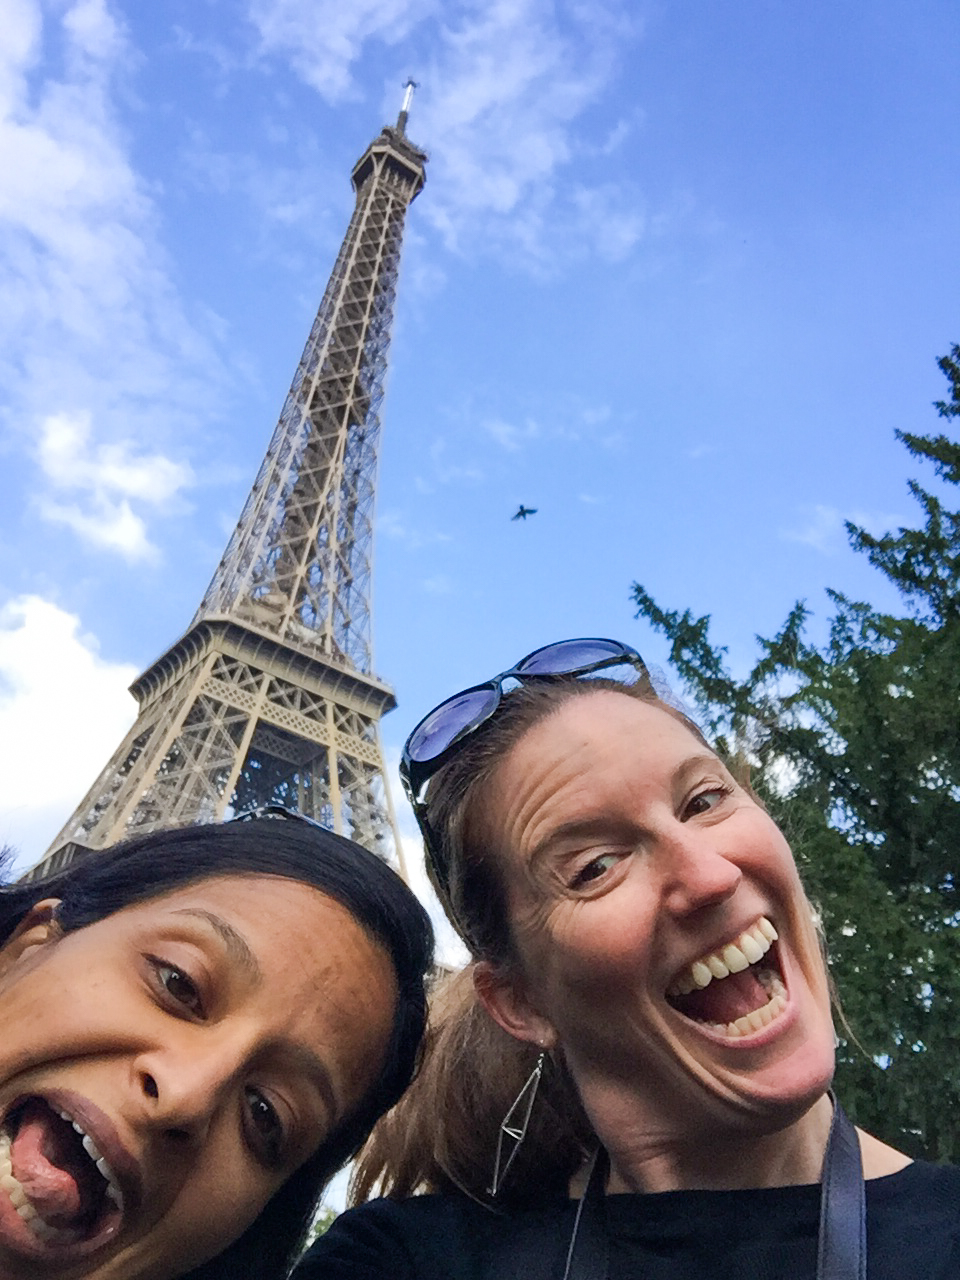 Goofy Americans in Paris. Oct '16